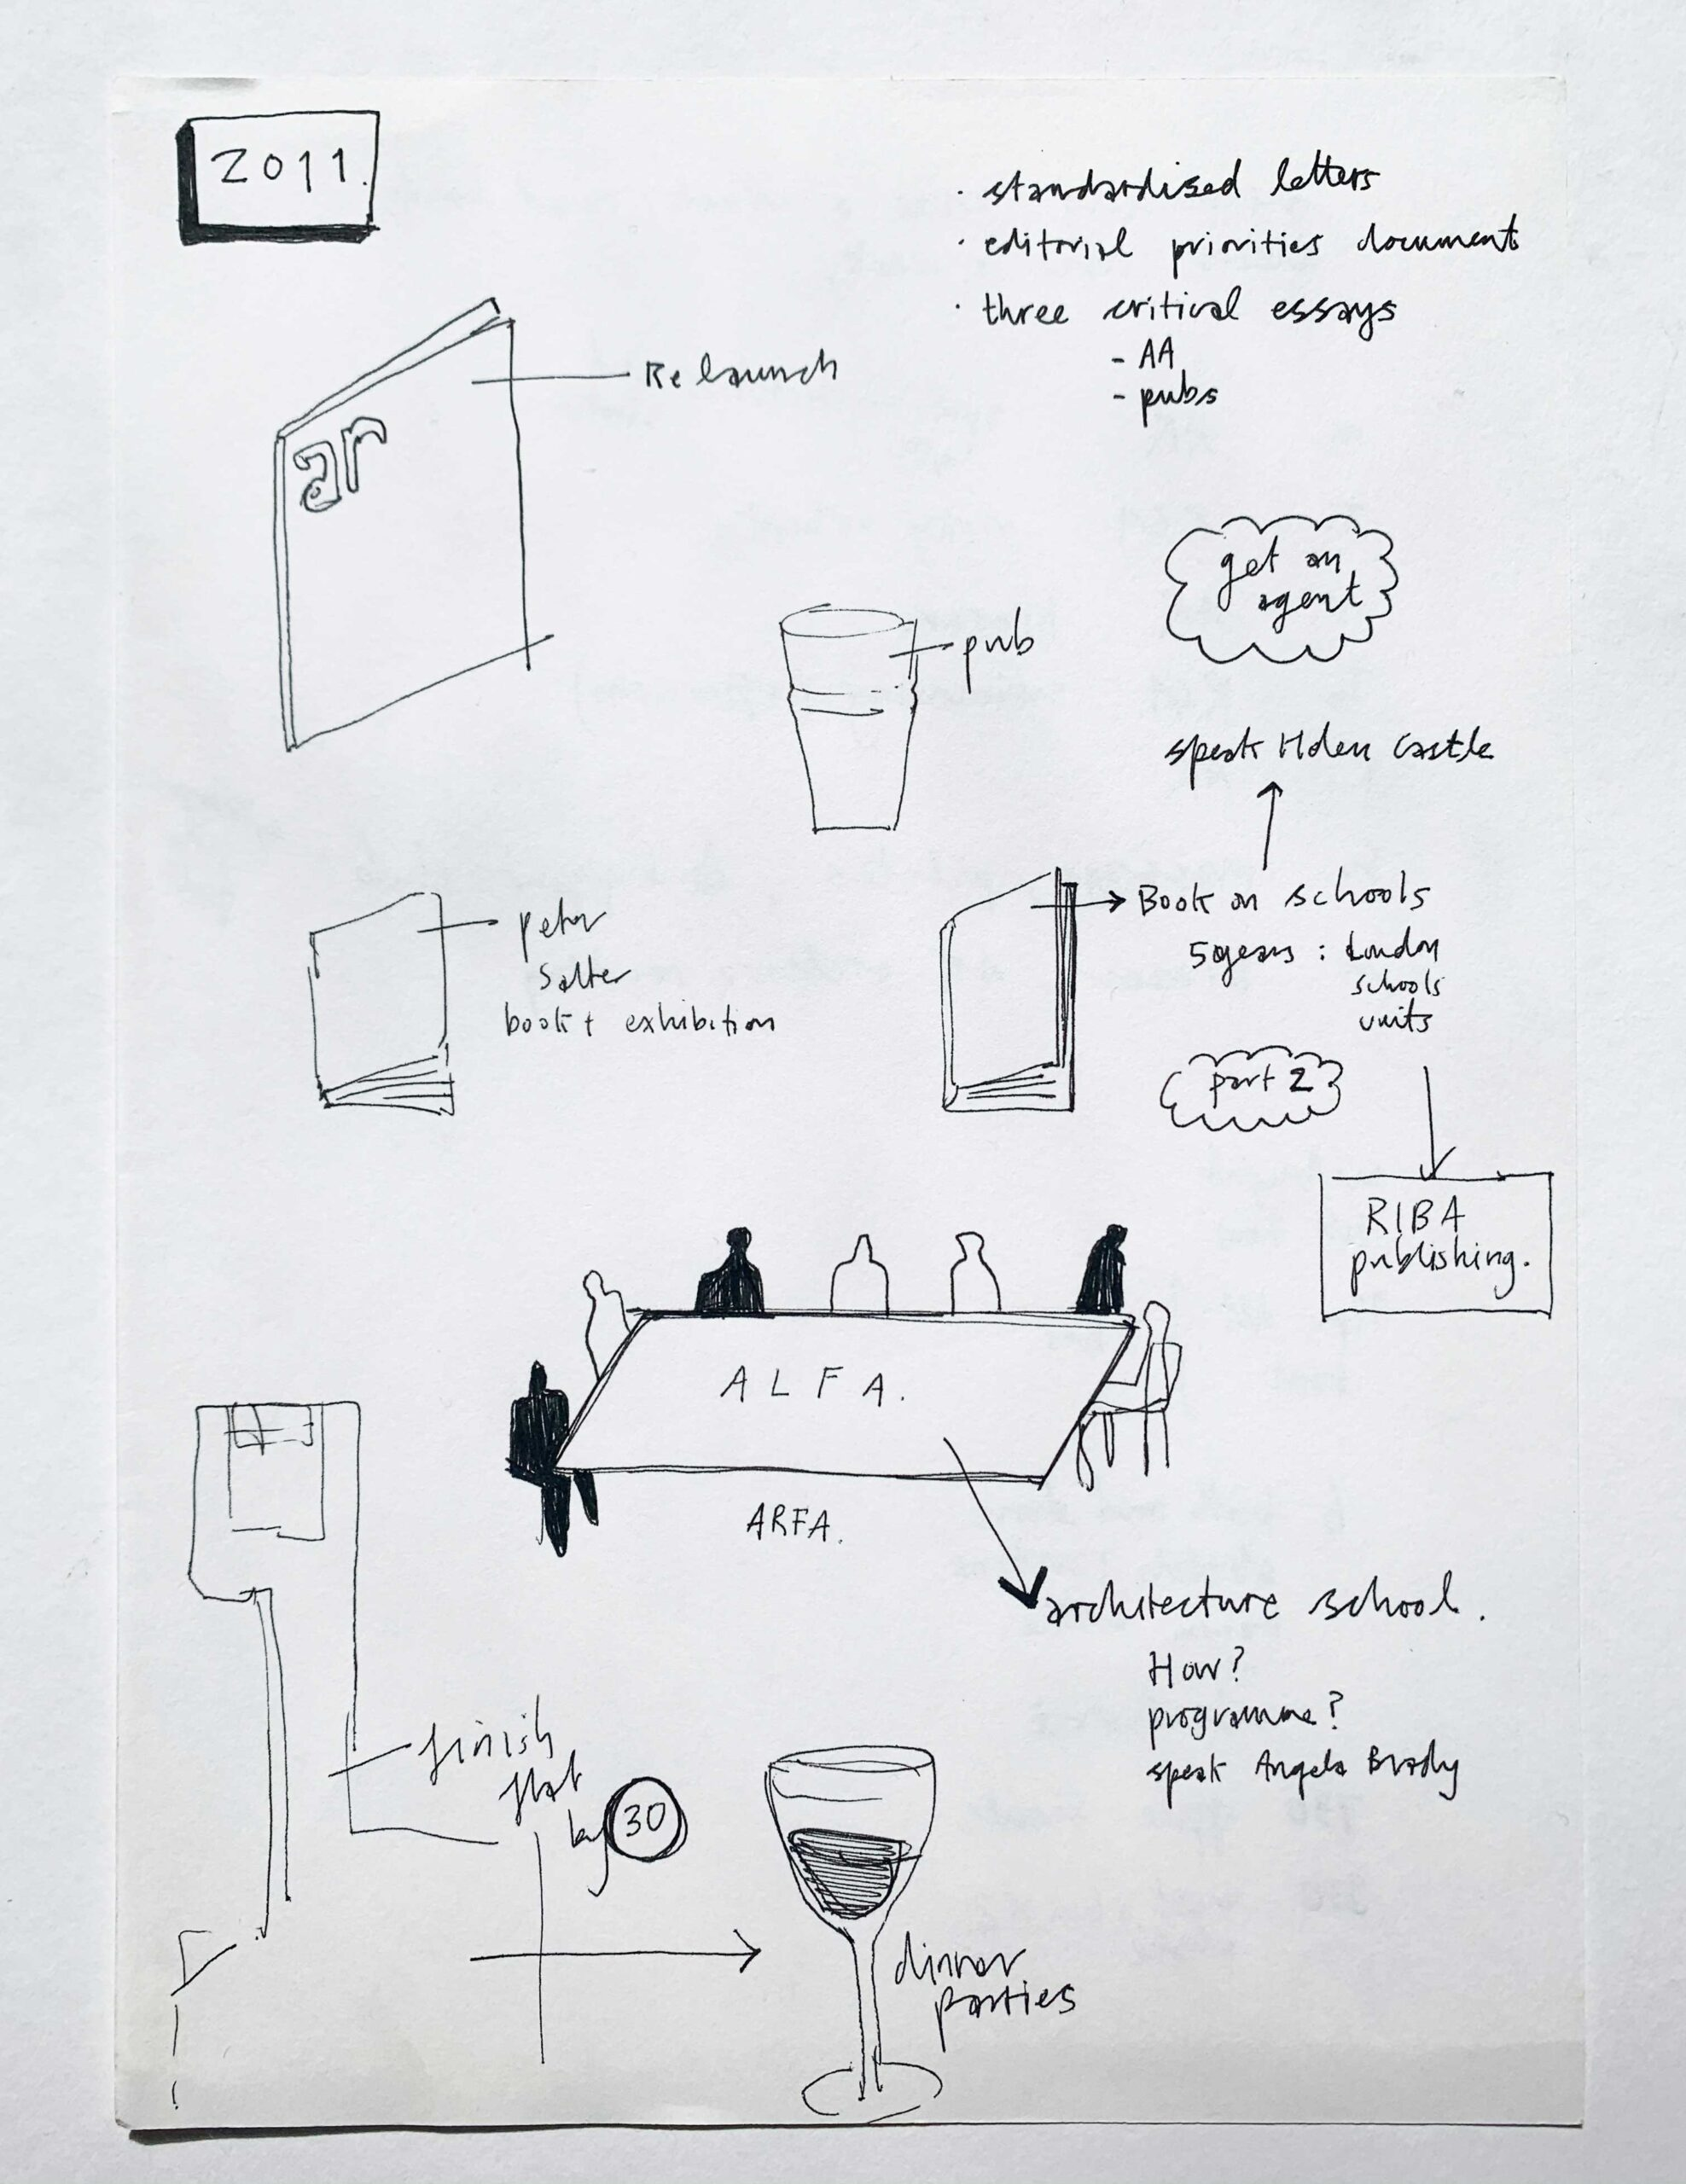 Fig. 1. One of the first drawings I made for the project was of a table with people coming together to talk. Produced in late 2010 in Los Angeles while staying with Natalie Loren, it was sketching out my plans for 2011. The new school was pretty much the only resolution I kept. By explanation, I think the 'pub' was about researching rather than frequenting them.